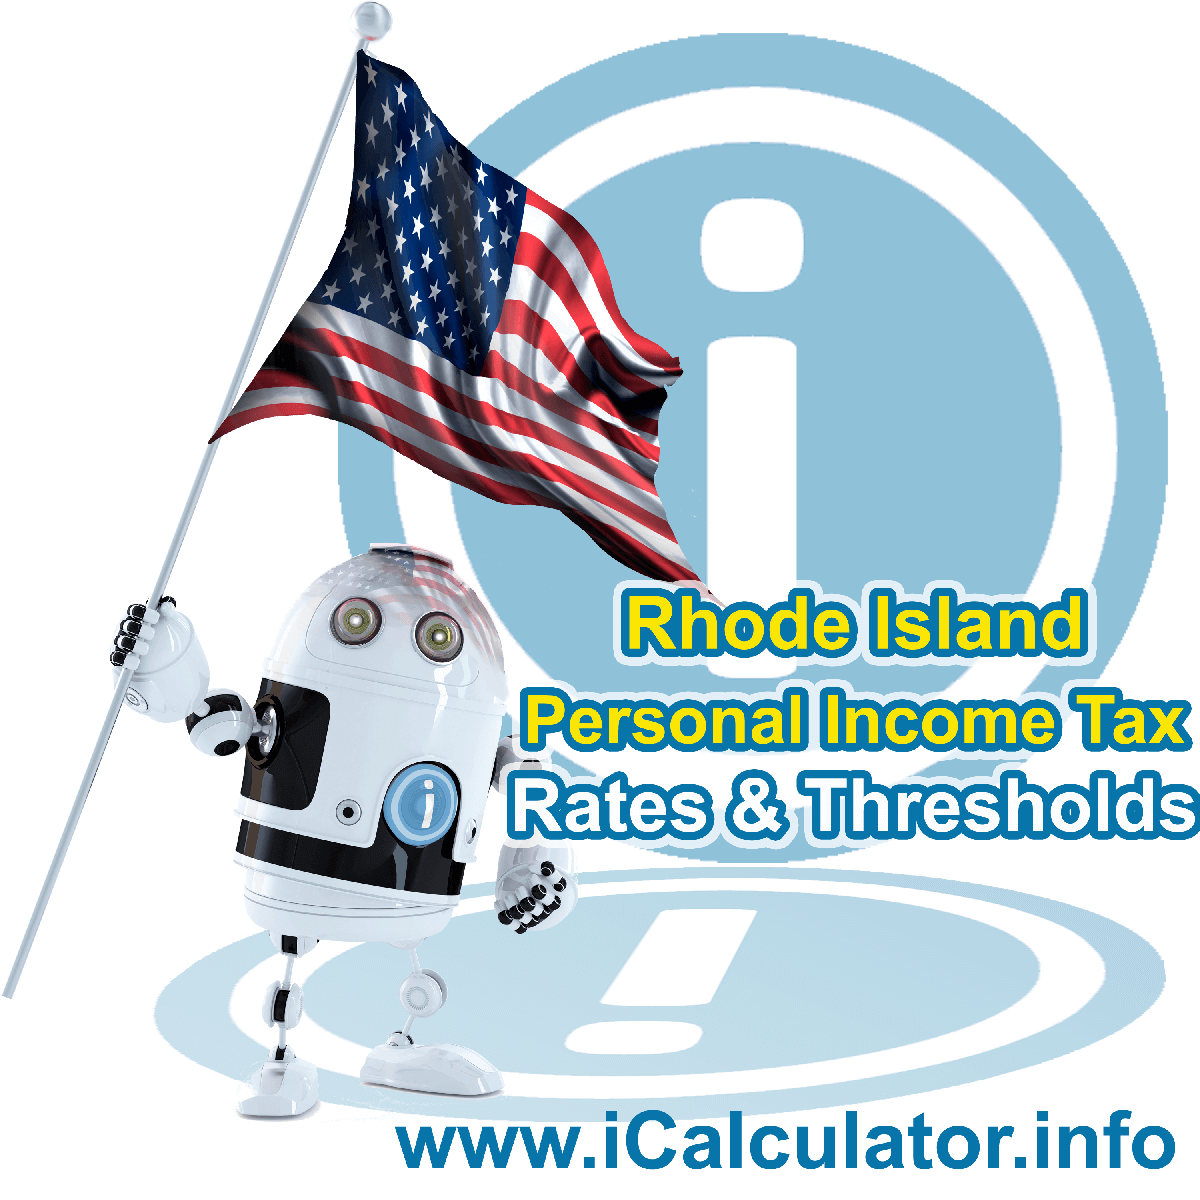 Rhode Island State Tax Tables 2018. This image displays details of the Rhode Island State Tax Tables for the 2018 tax return year which is provided in support of the 2018 US Tax Calculator